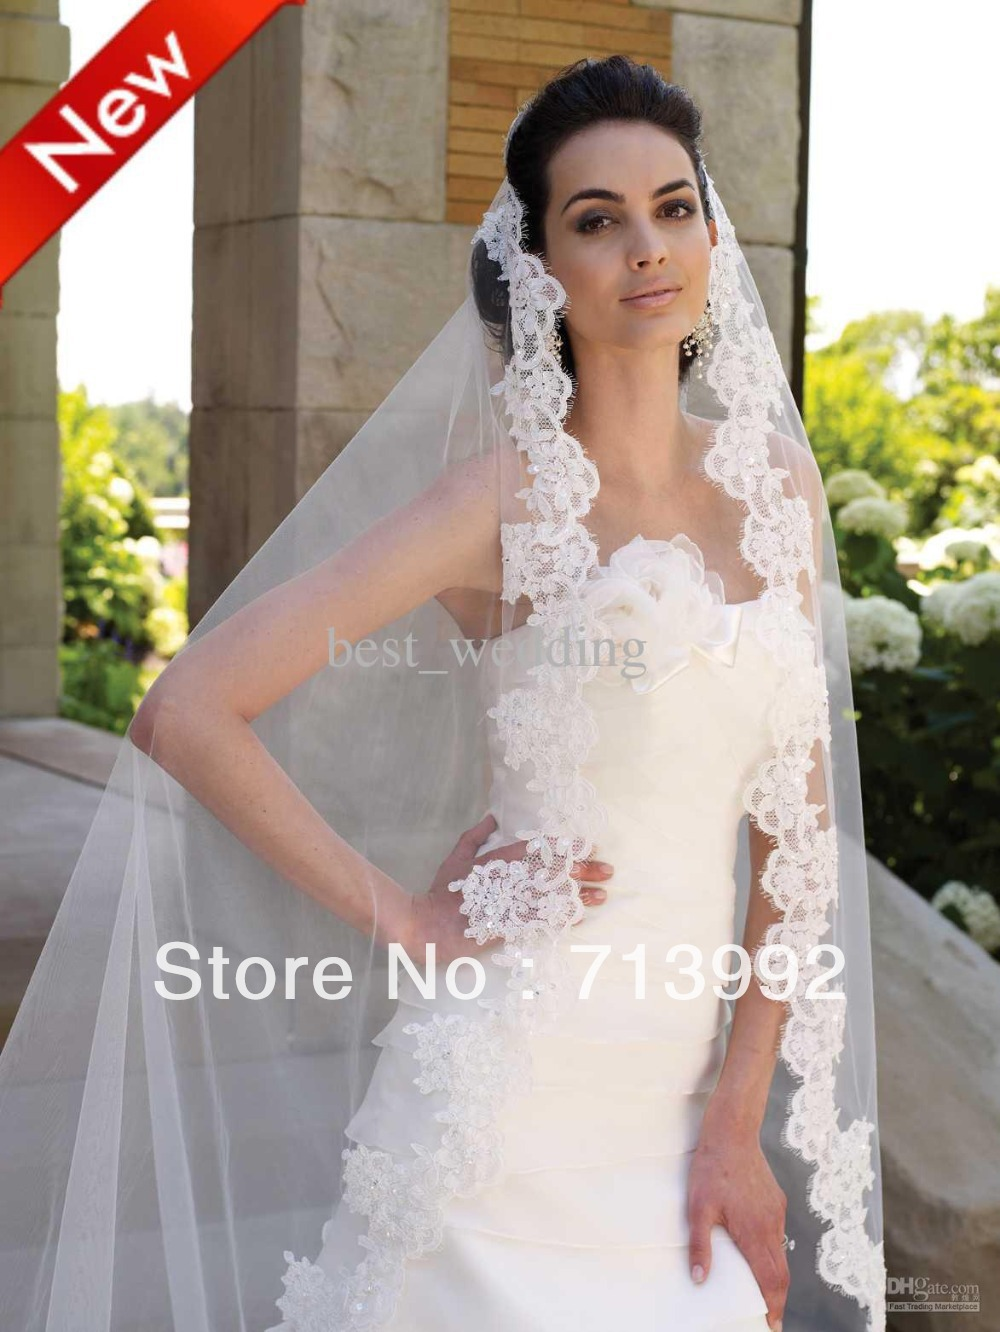 ... Lace Purfle Beaded Bridal Veils Tulle Wedding Dress Veil Custom Bridal